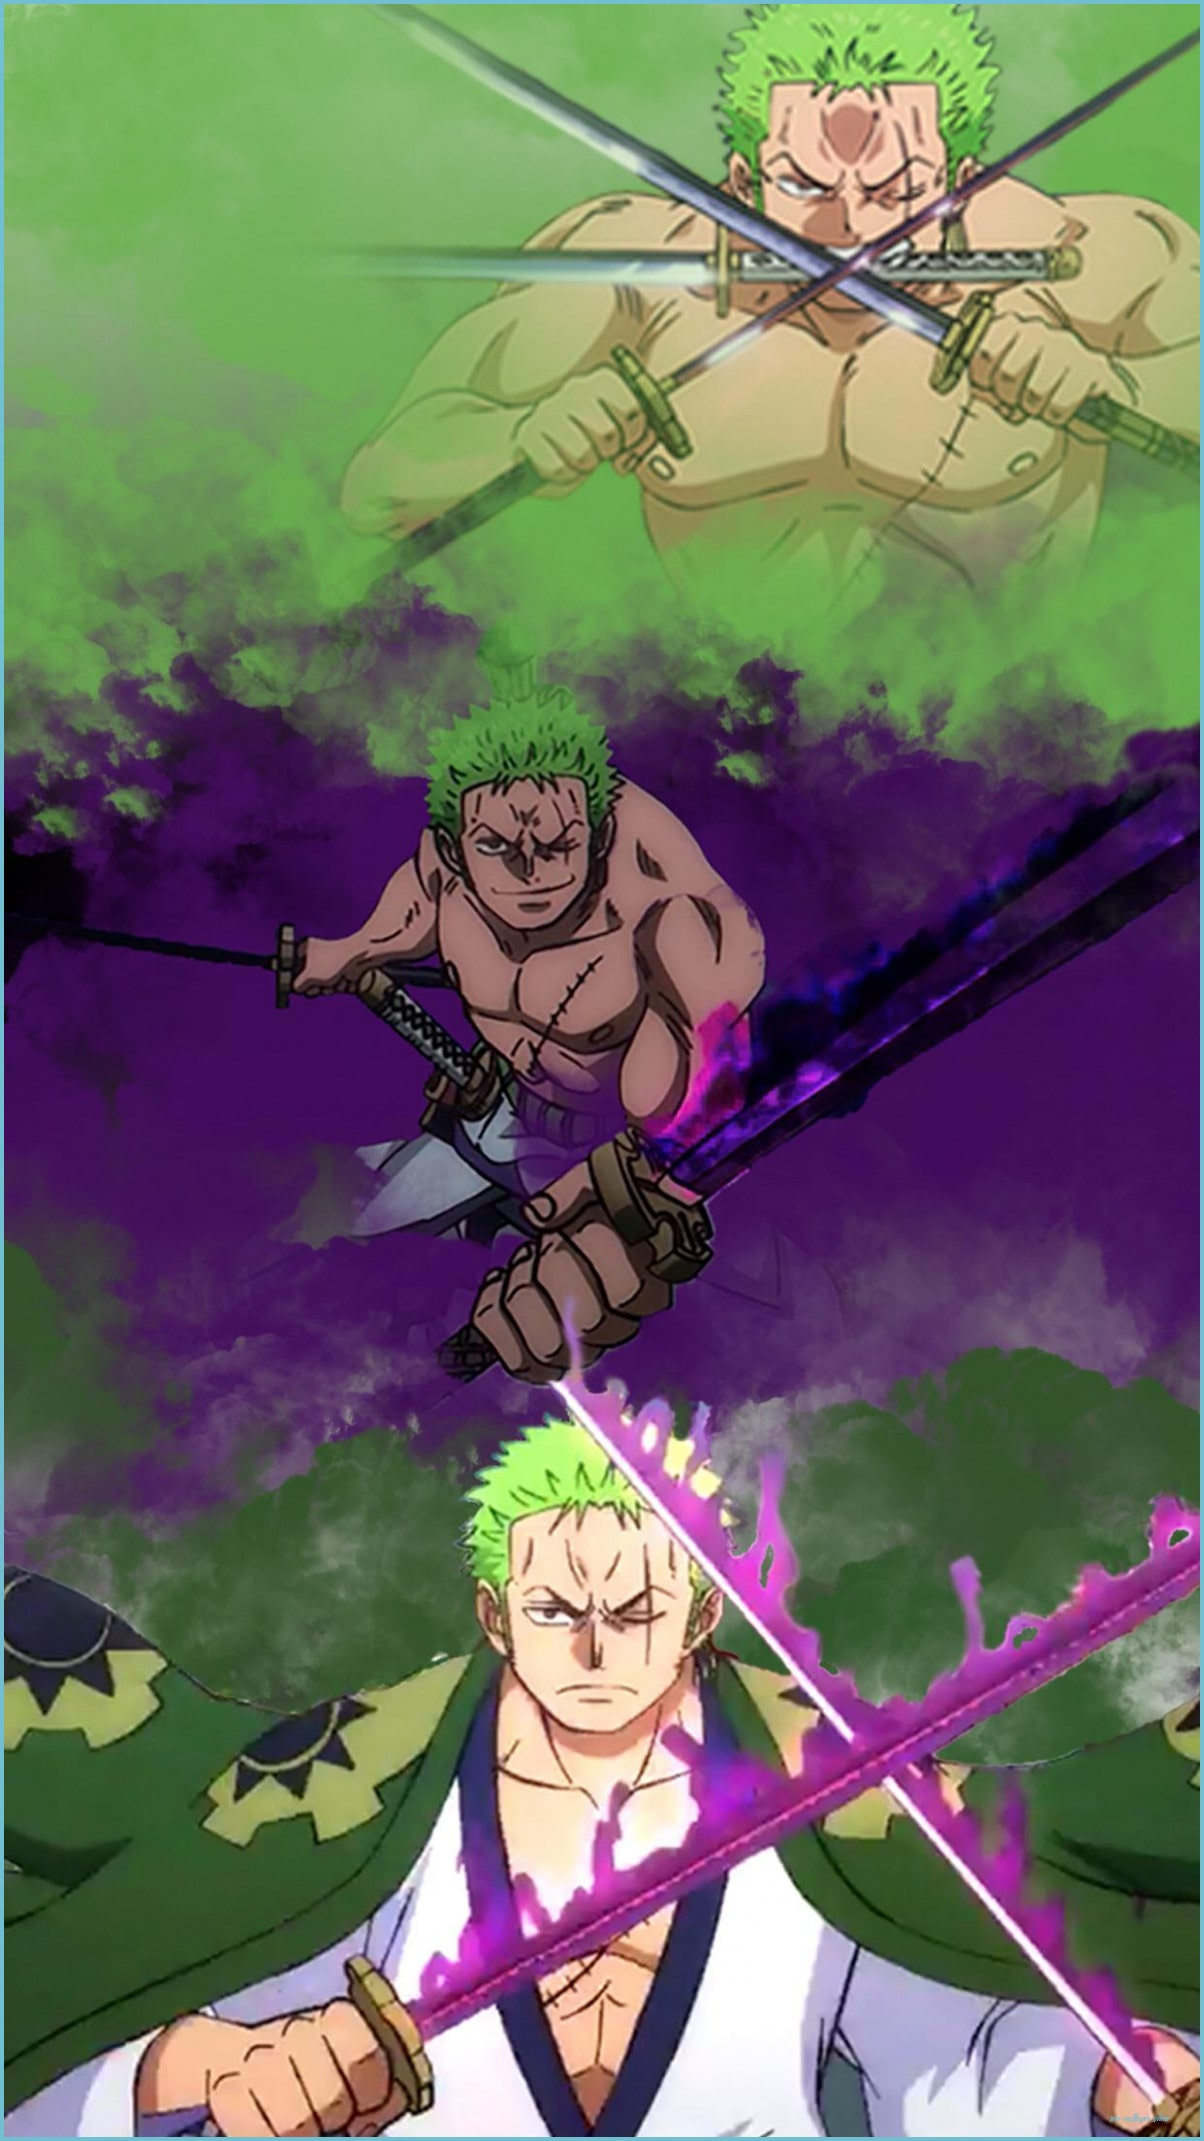 Zoro Wallpapers for Iphone - KoLPaPer - Awesome Free HD ...